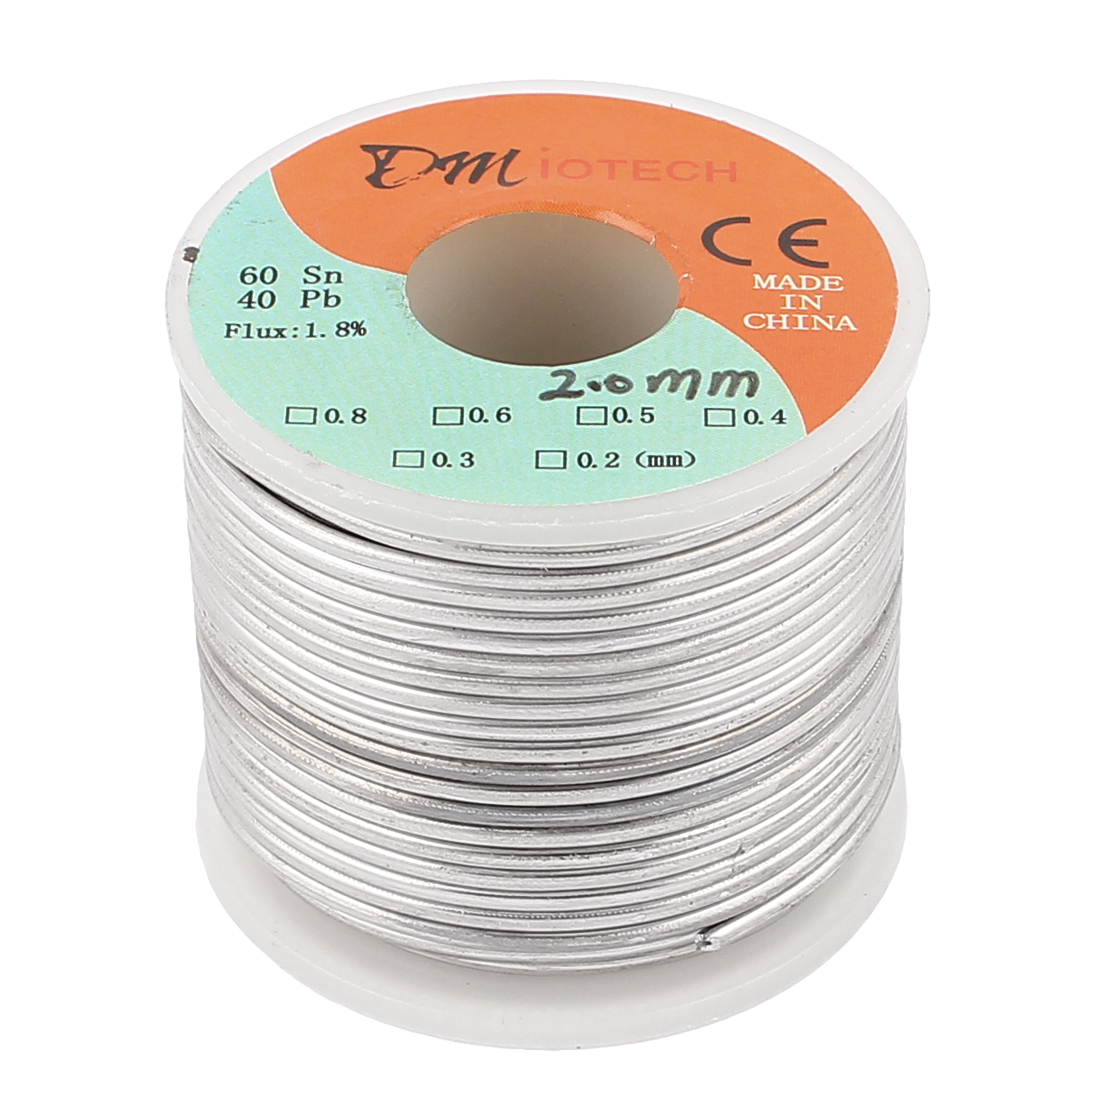 2mm Rosin Core Solder Tin Lead Solder Wire 60/40 for Electrical Soldering 400g